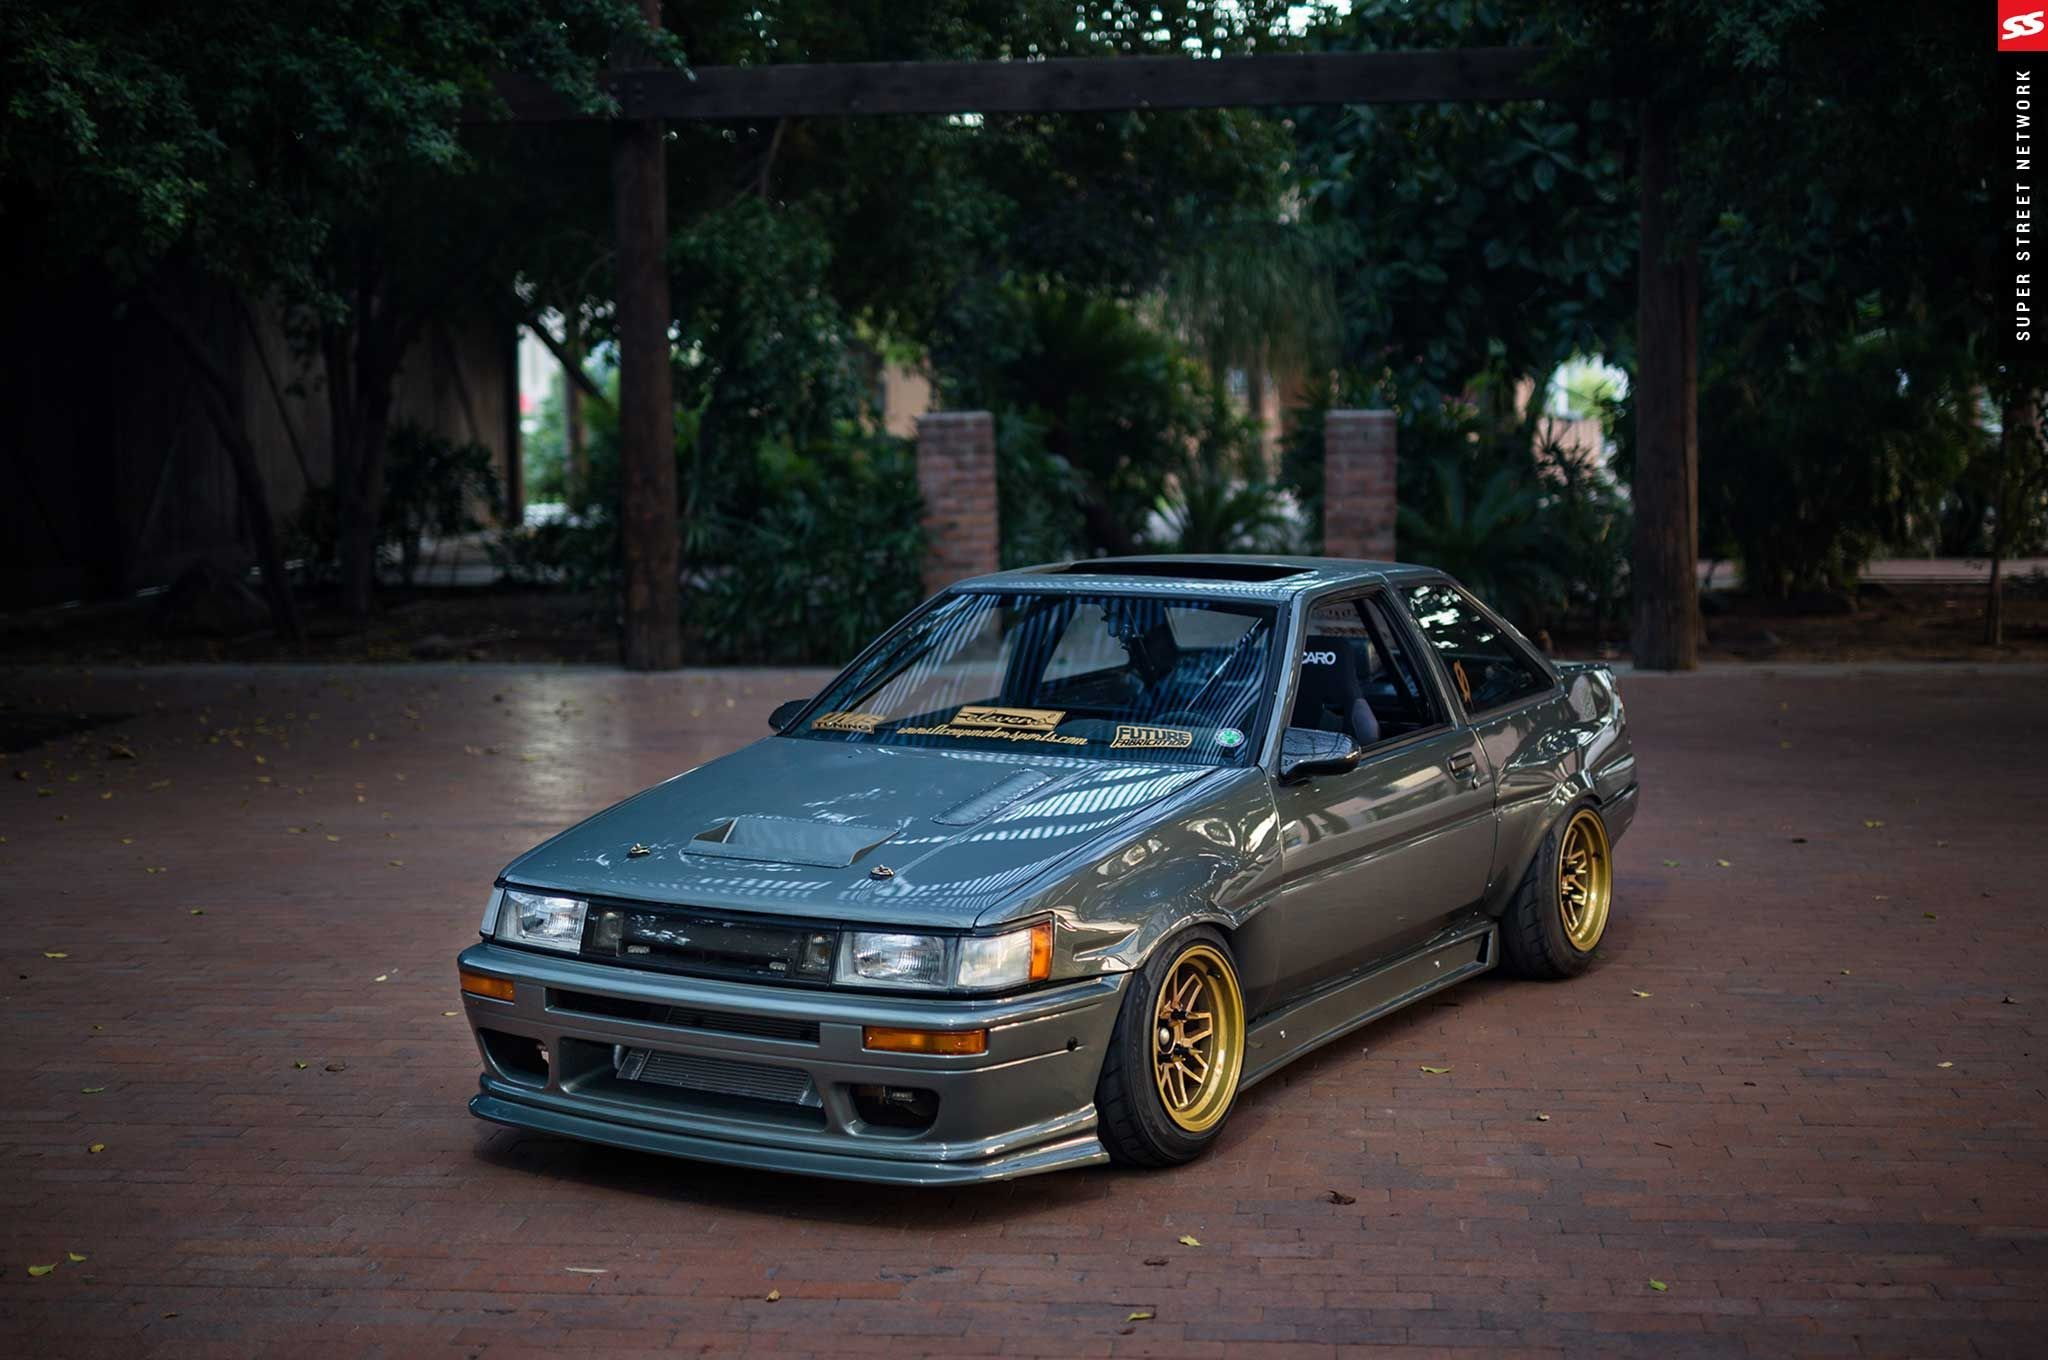 1986 toyota corolla ae86 cars modified wallpaper 2048x1360 927724 wallpaperup. Black Bedroom Furniture Sets. Home Design Ideas